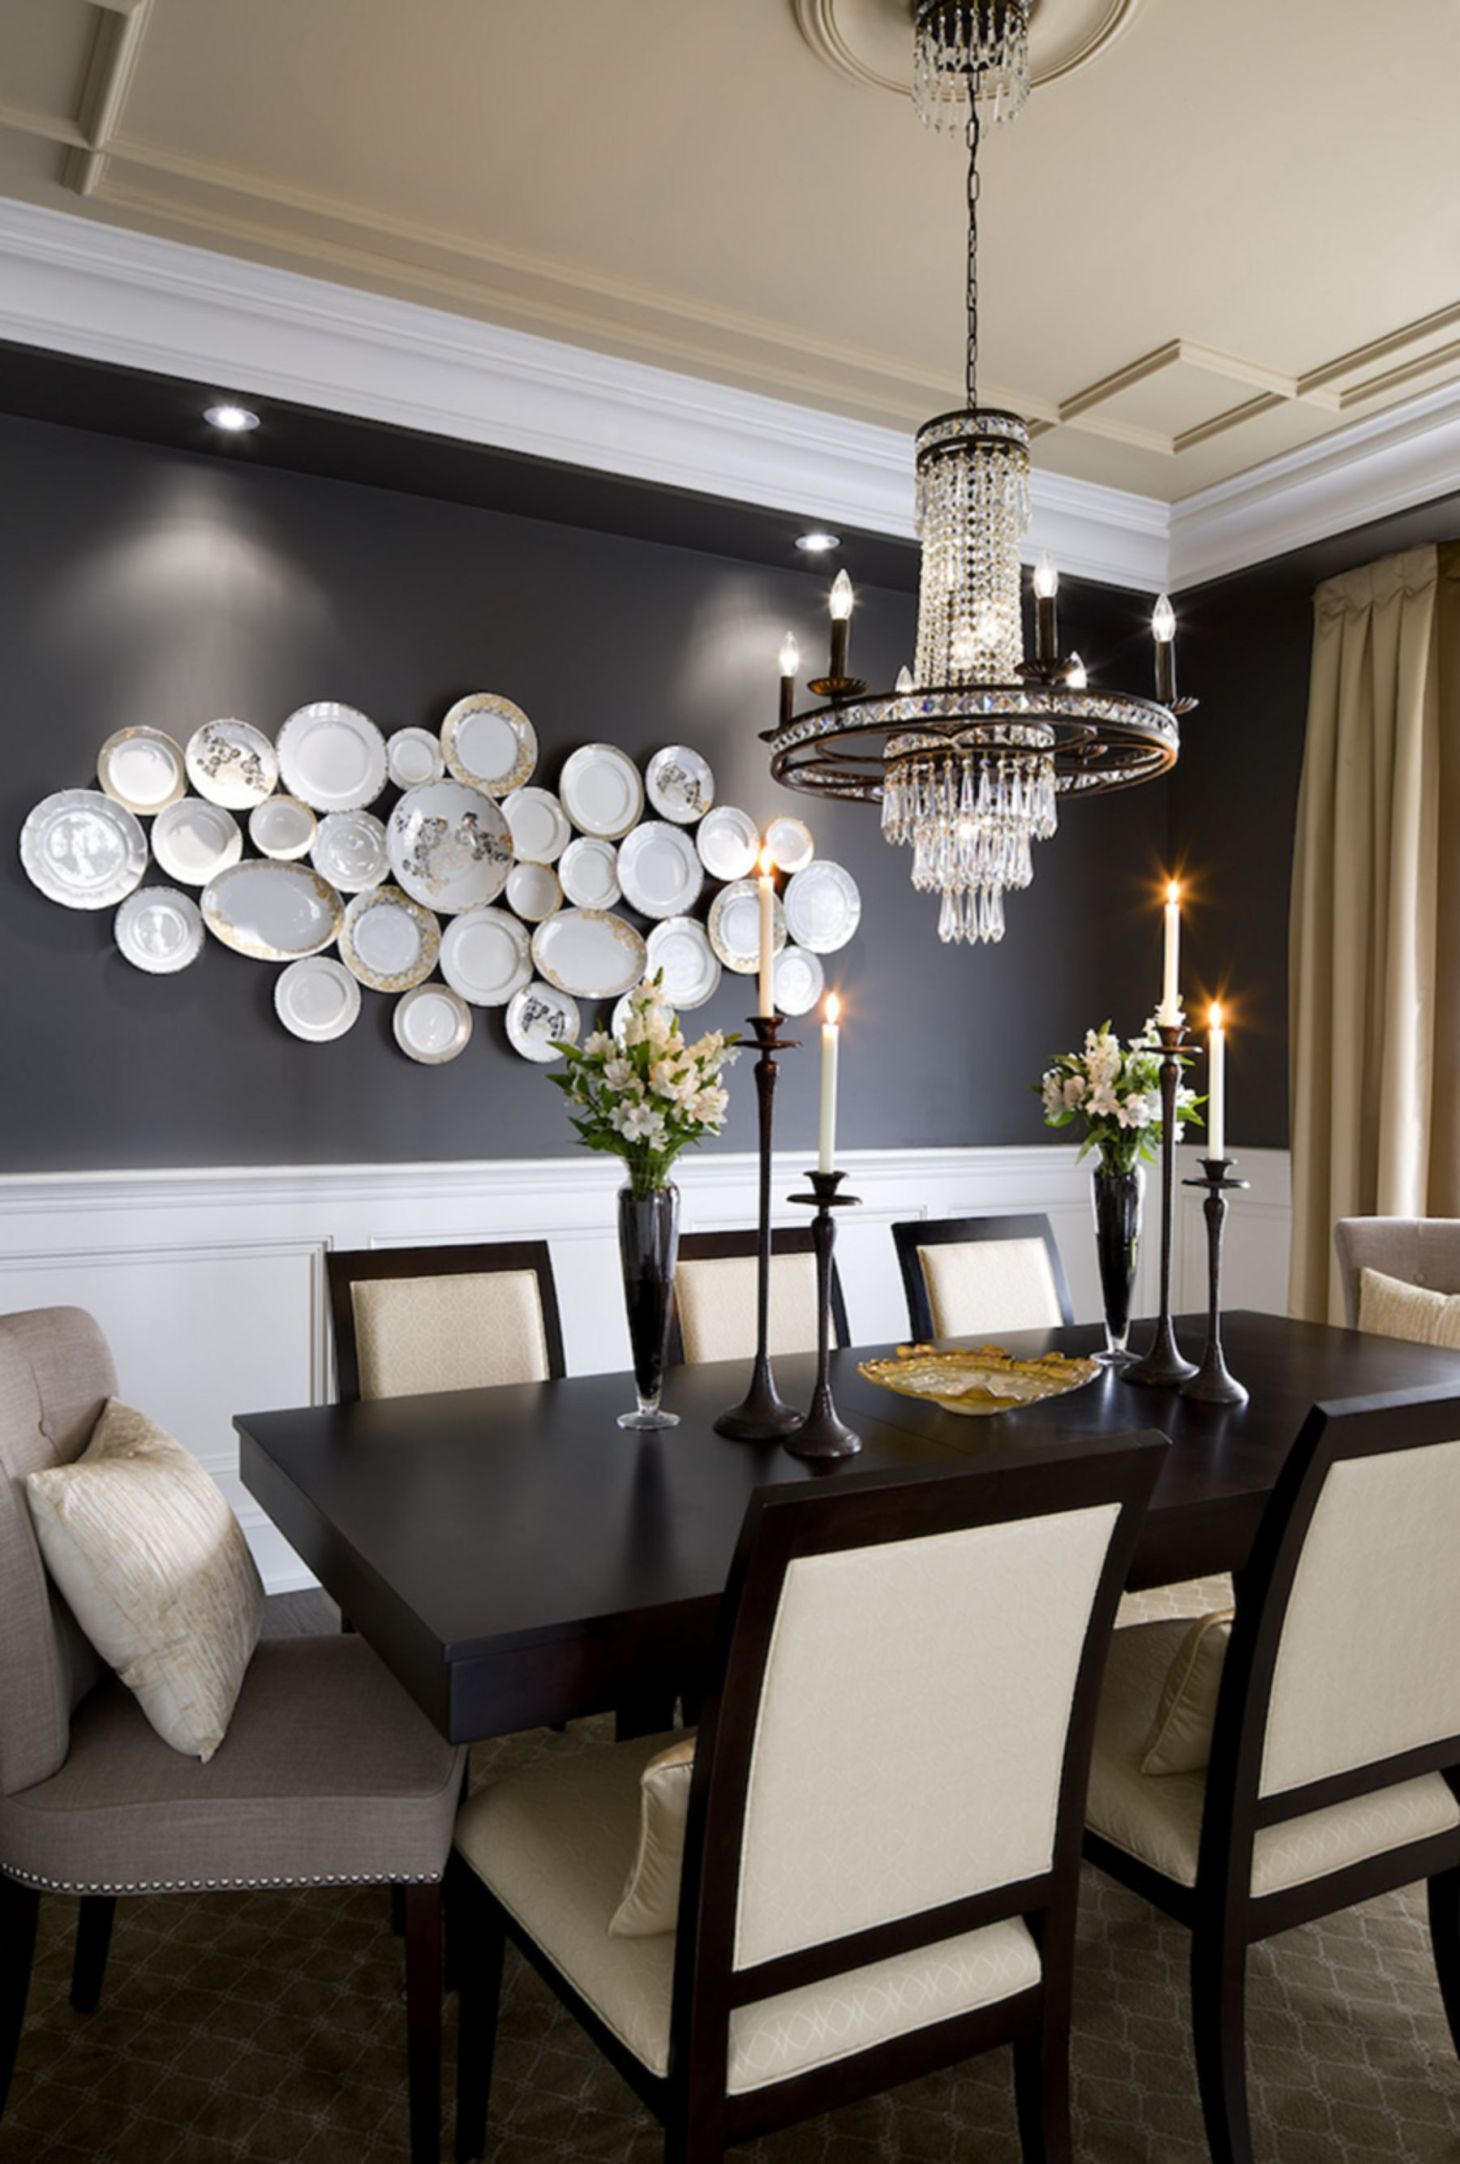 10 Awesome Dining Table Design Ideas For Your Dining Room